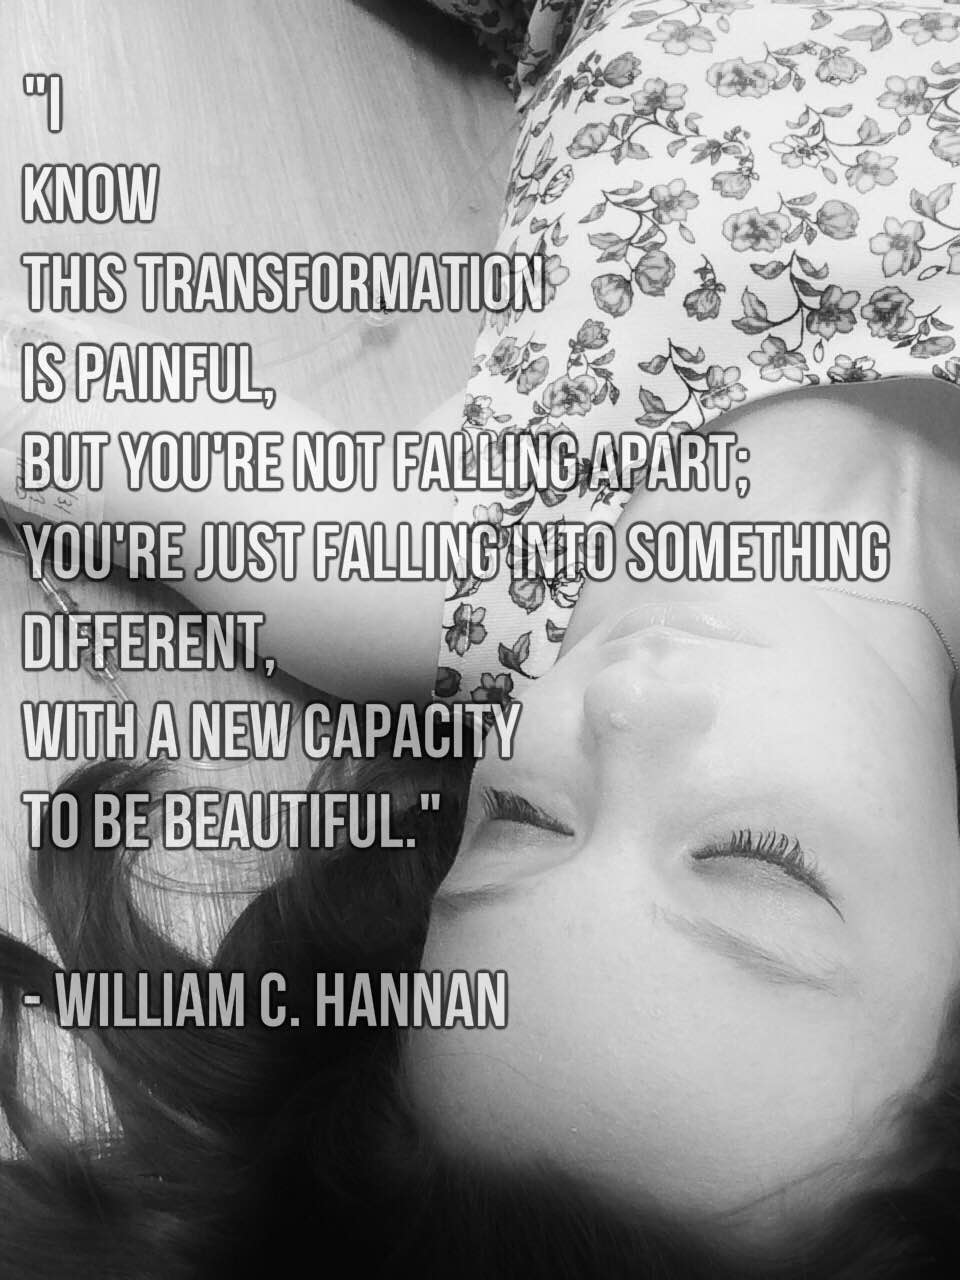 meme with words i know this transformation is painful but you're not falling apart; you're just falling into something different, with a new capacity to be beautiful by william c. hannan